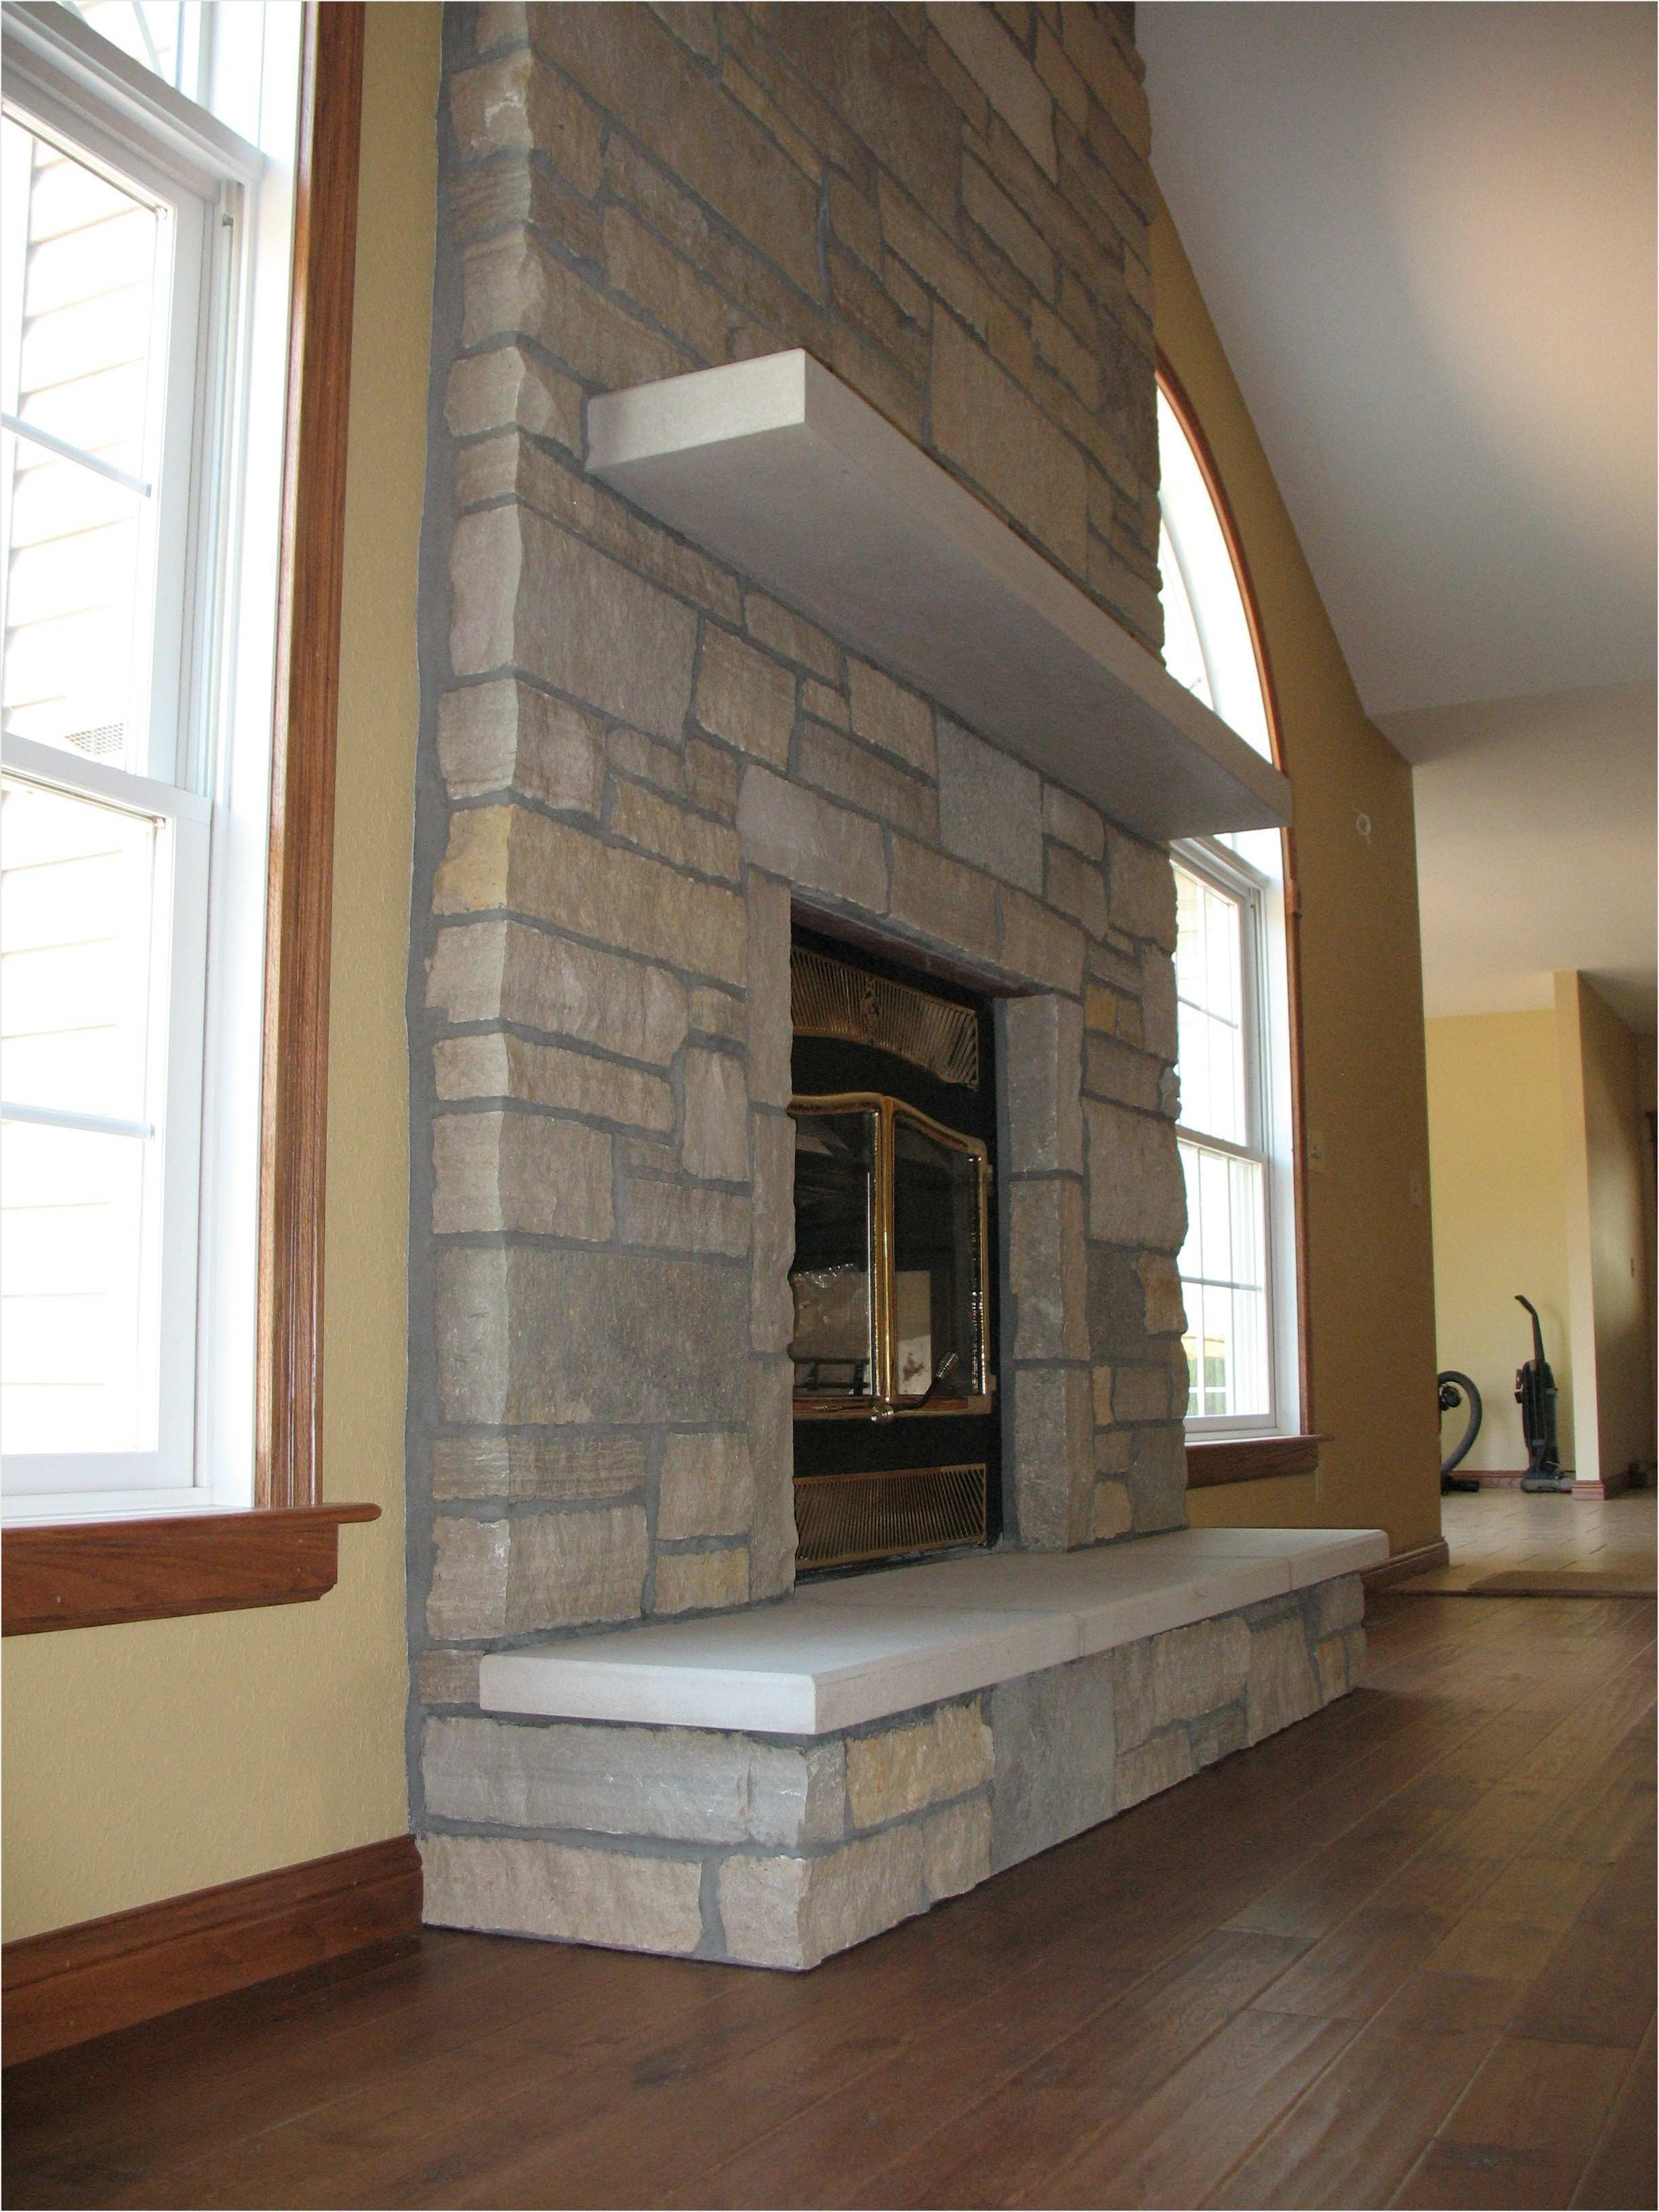 Ideas to Decorate Fireplace Mantel Ideas for Fireplace Mantel Decor